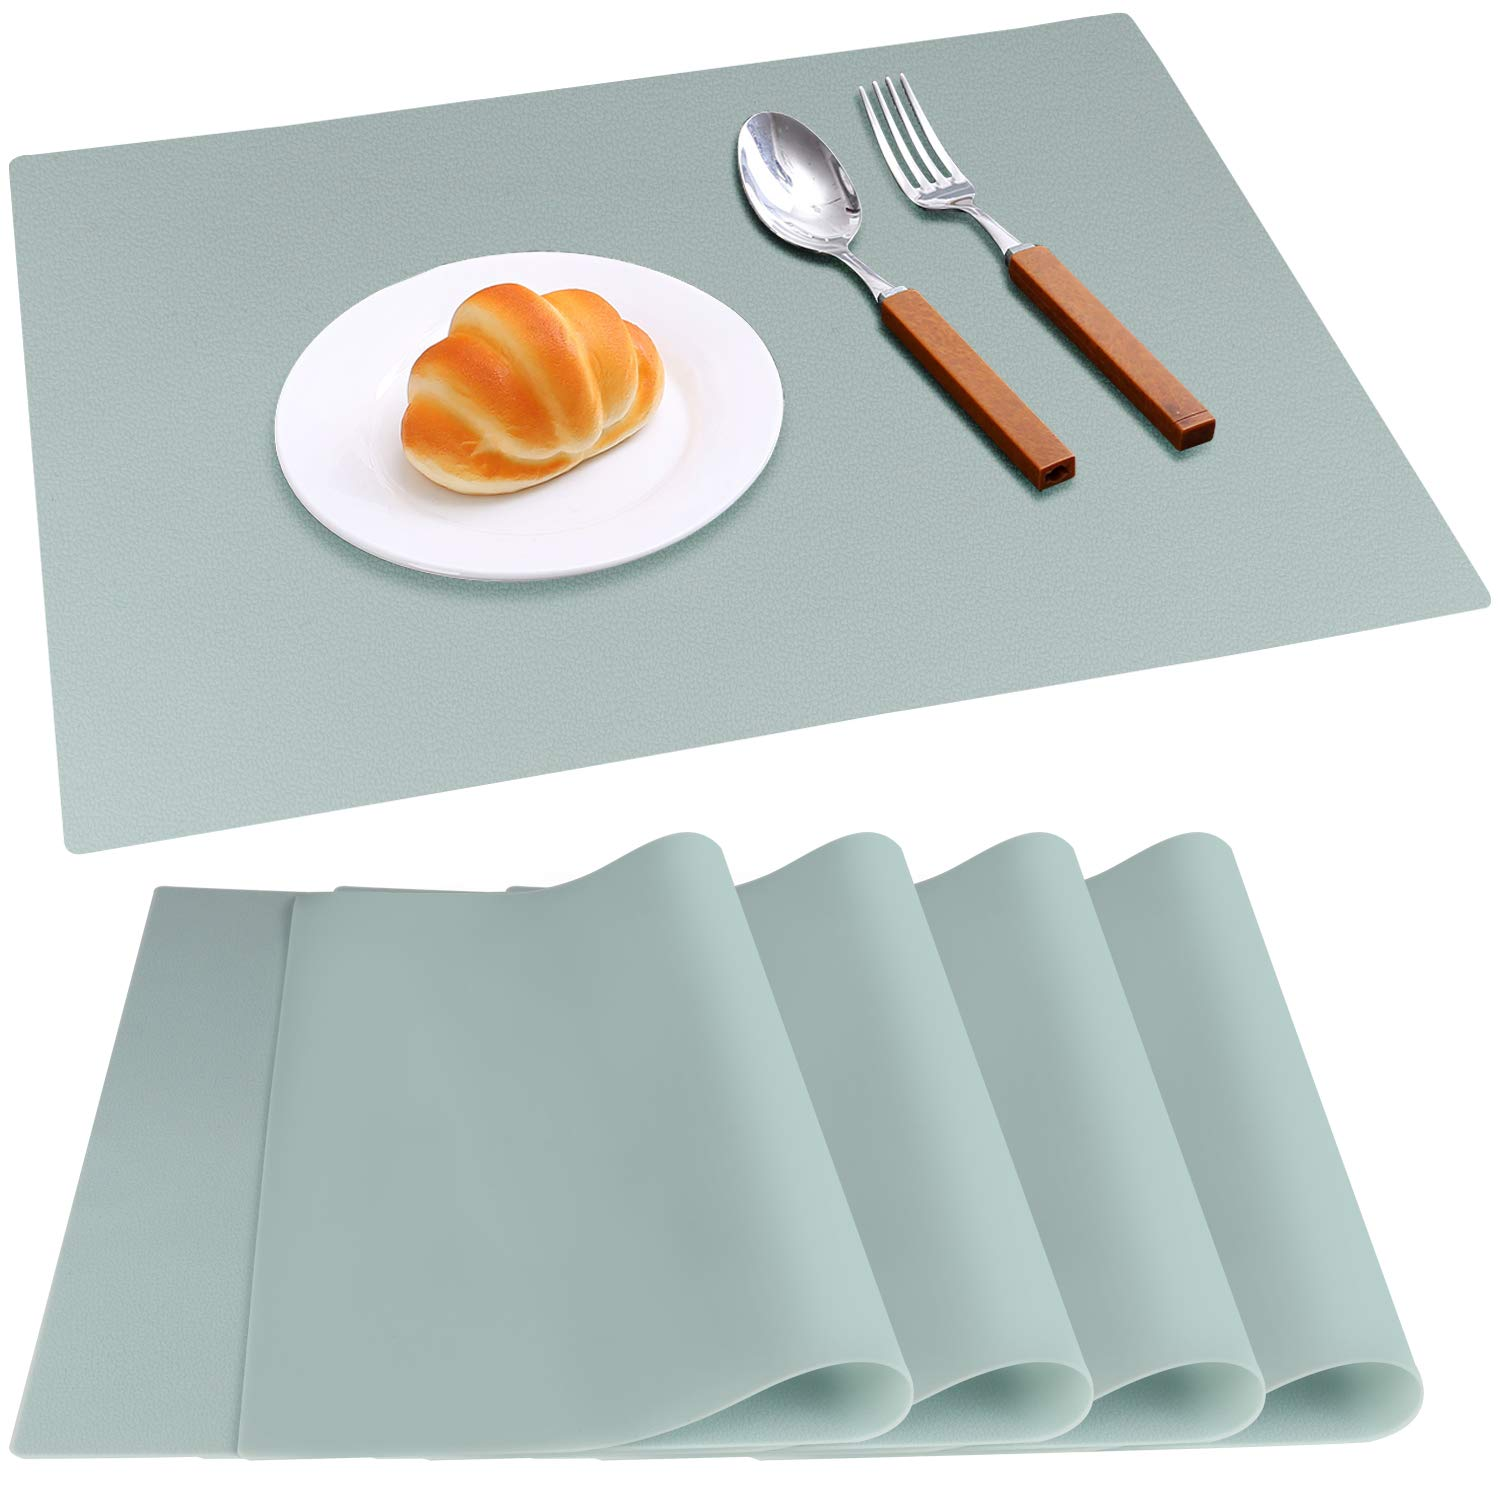 IVYOUNG Large Reusable Silicone Placemats for Dining Kitchen Table Heat-Resistant Baking Mat Countertop Protector, Non-Slip Flexible Washable Dining Mats(Set of 4,Mint Green)